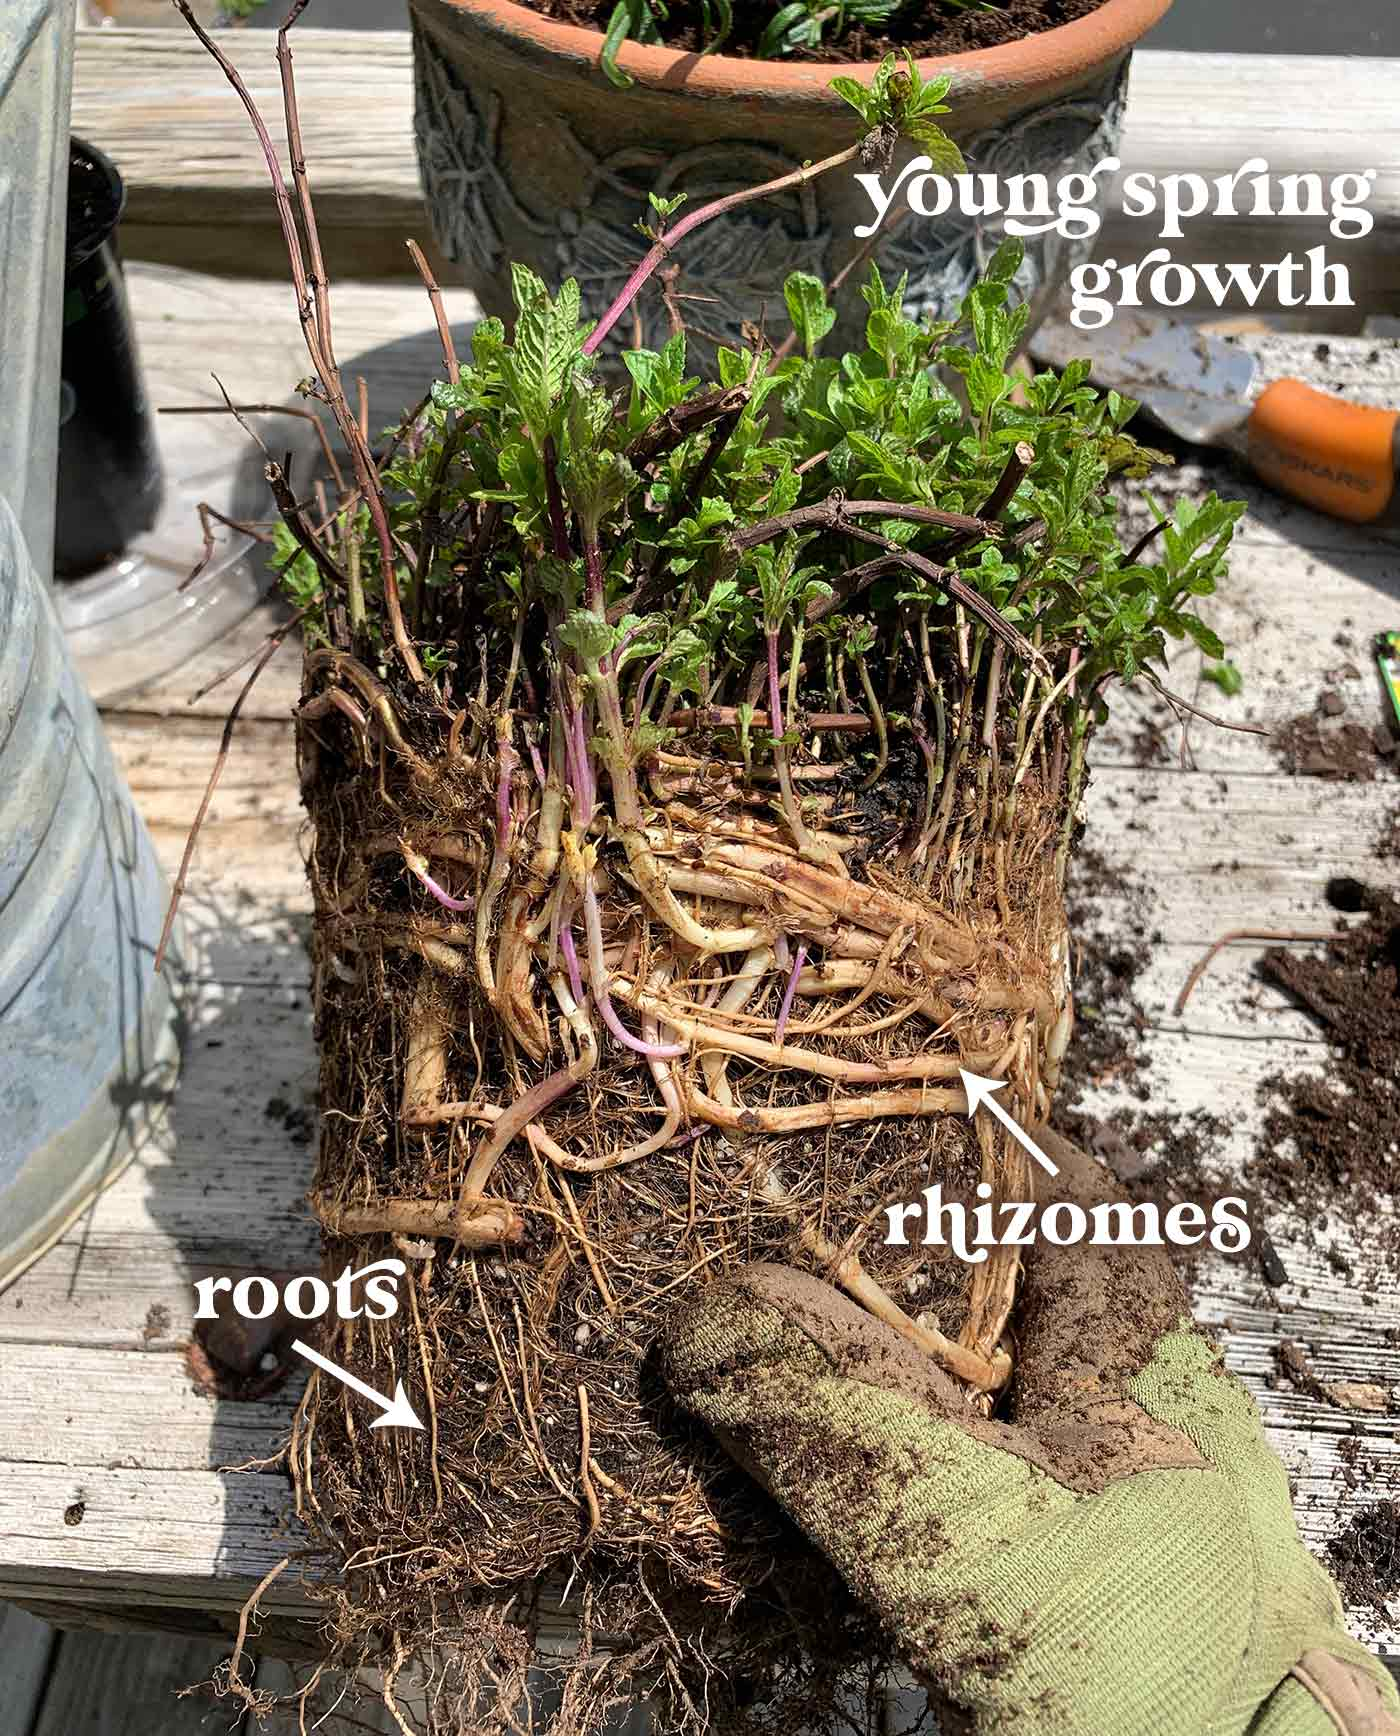 The root system of a one-year-old mint plant, showing the root ball and extensive web of rhizomes.